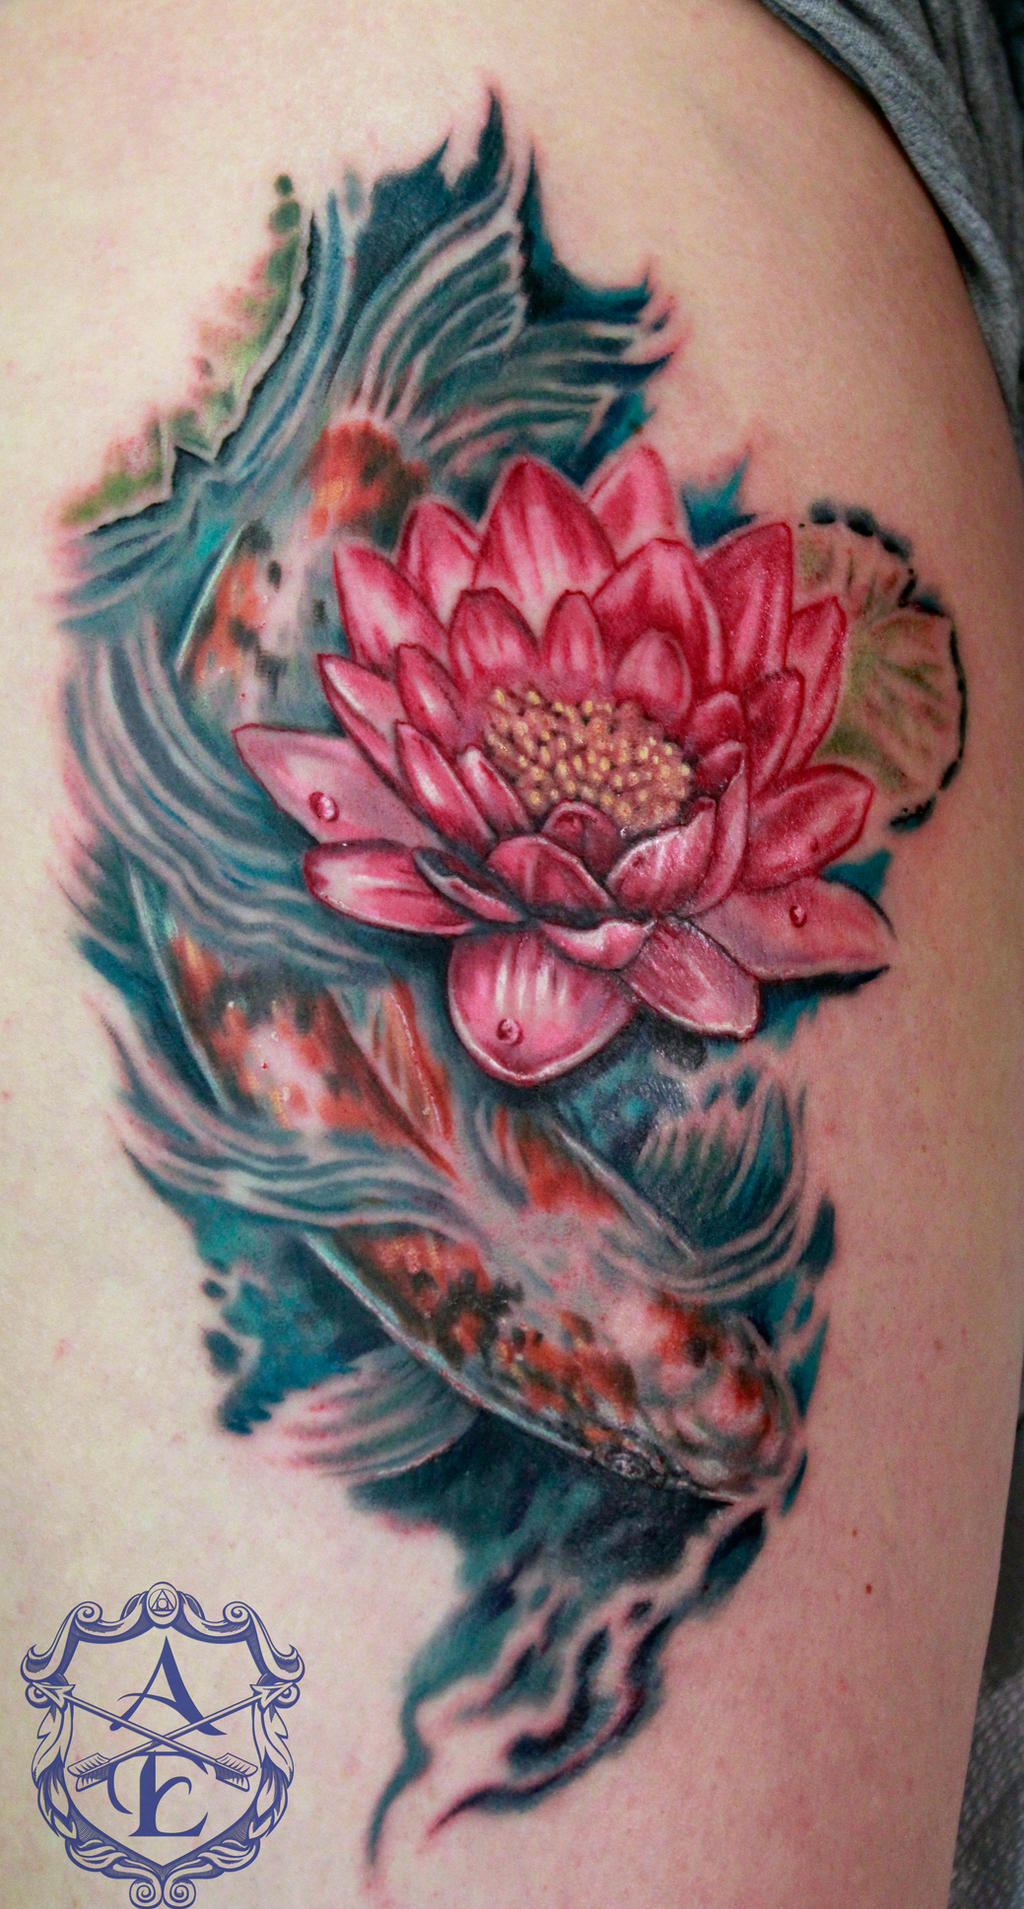 Since the koi fish and lotus flowers tattoo was our first ever coloured design, it's only natural that we've decided to start our 'Meaning Behind a Tattoo' series of.